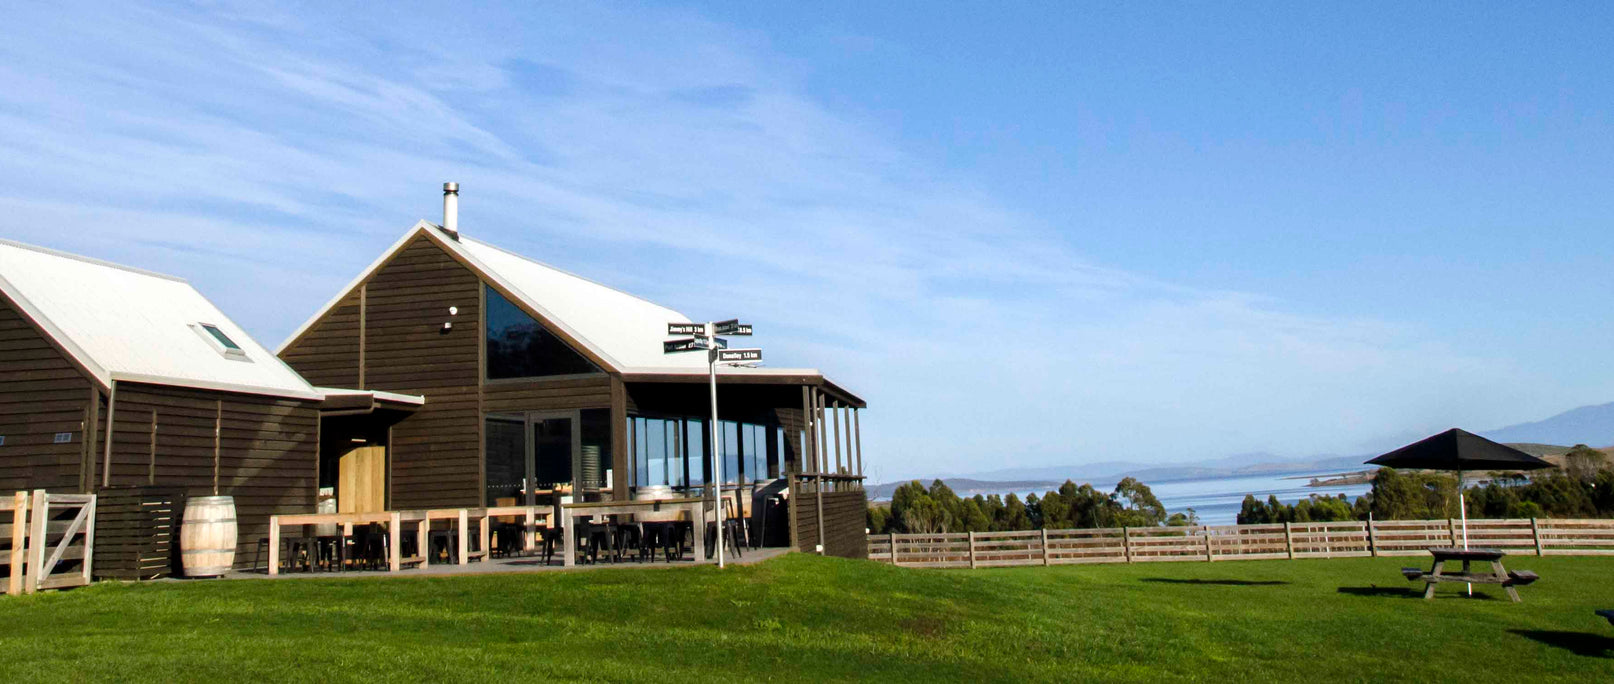 Bangor Vineyard Shed - closed for now - online open